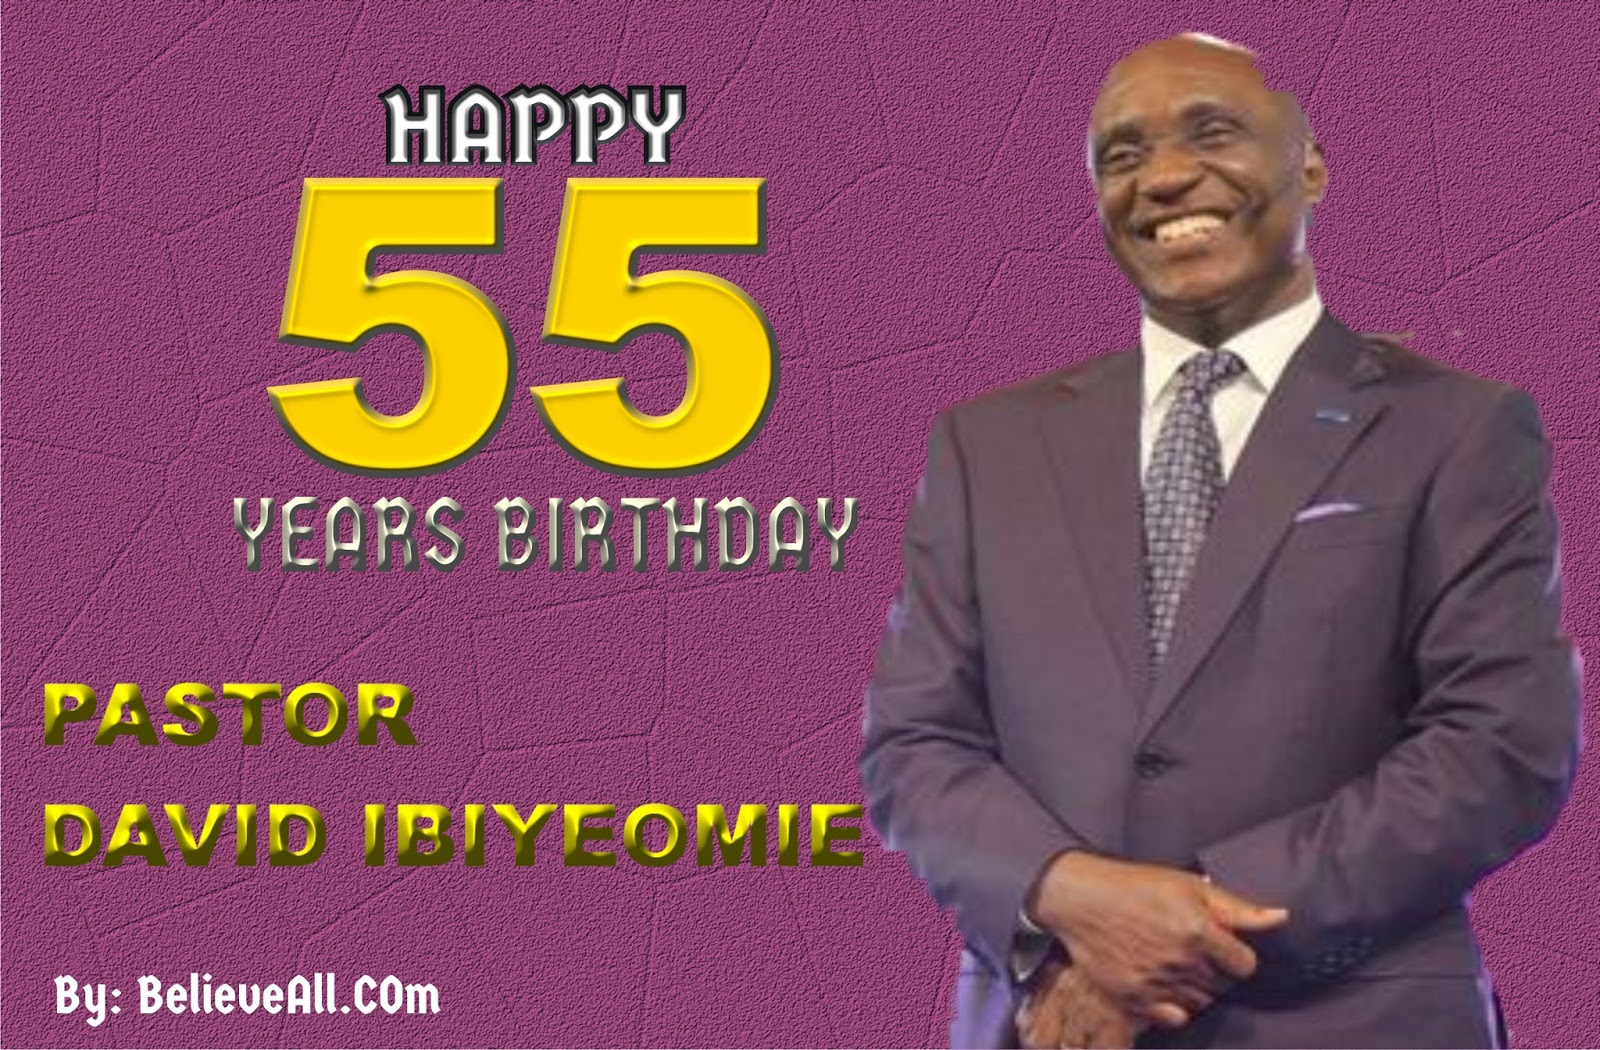 Happy 55 Years Birthday Pastor David Ibiyeomie Believeall